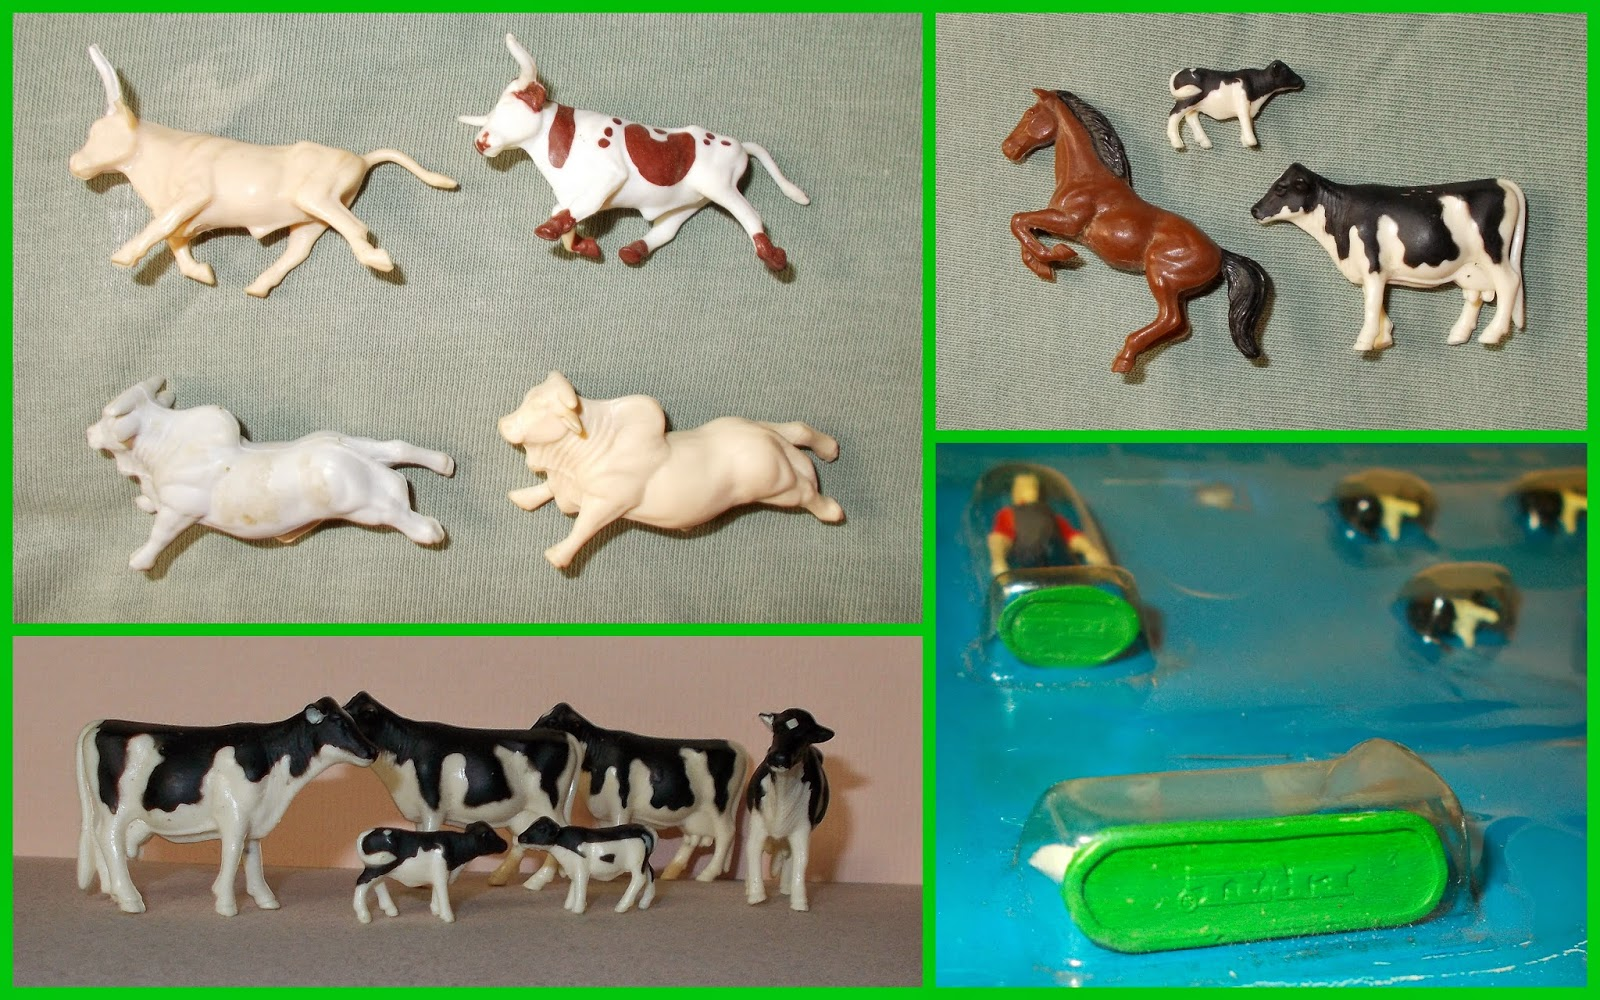 All photos of the renault rodeo 6 on this page are represented for - There Were Also Lots Of More Standard Farm Sets And Here Are A Few Animals From Them Along With Studies Of The Rodeo Bulls And Horse